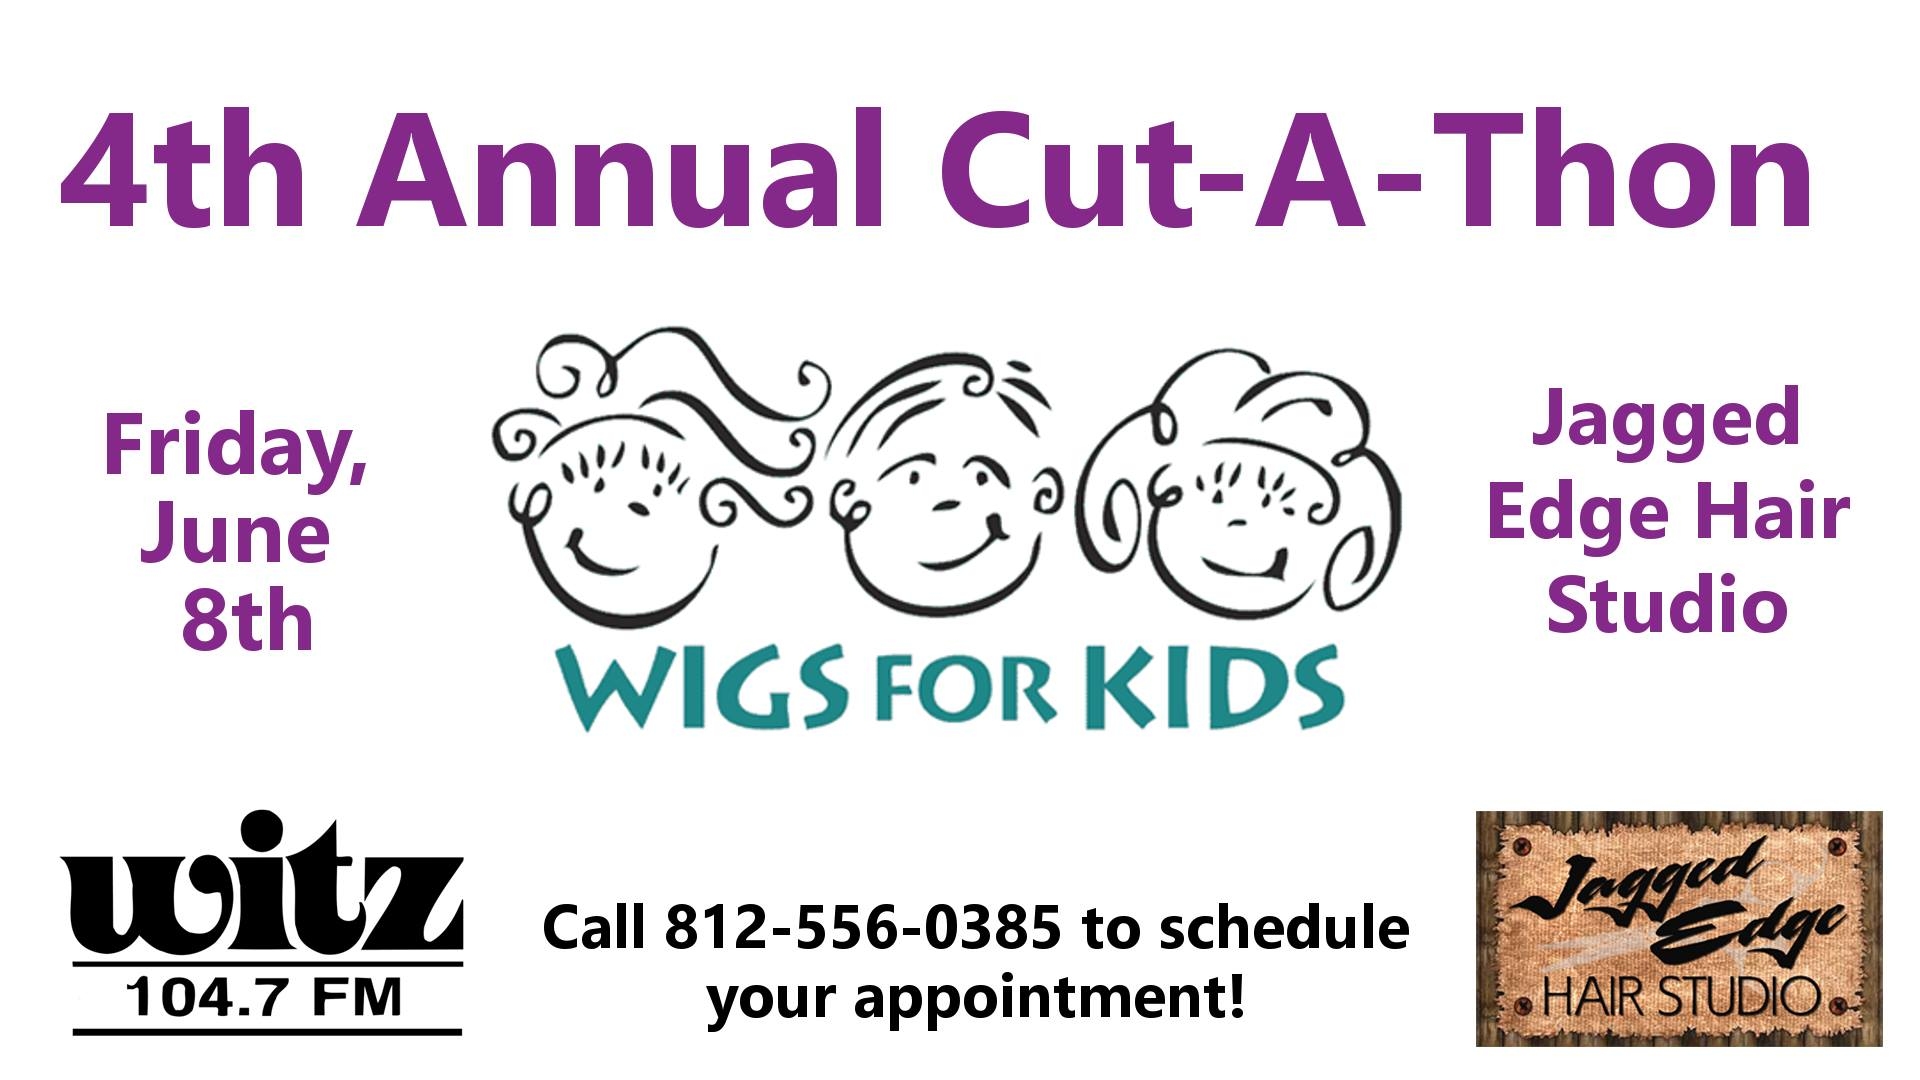 WITZ & Jagged Edge to Host 4th Annual Wigs for Kids Cut-A-Thon